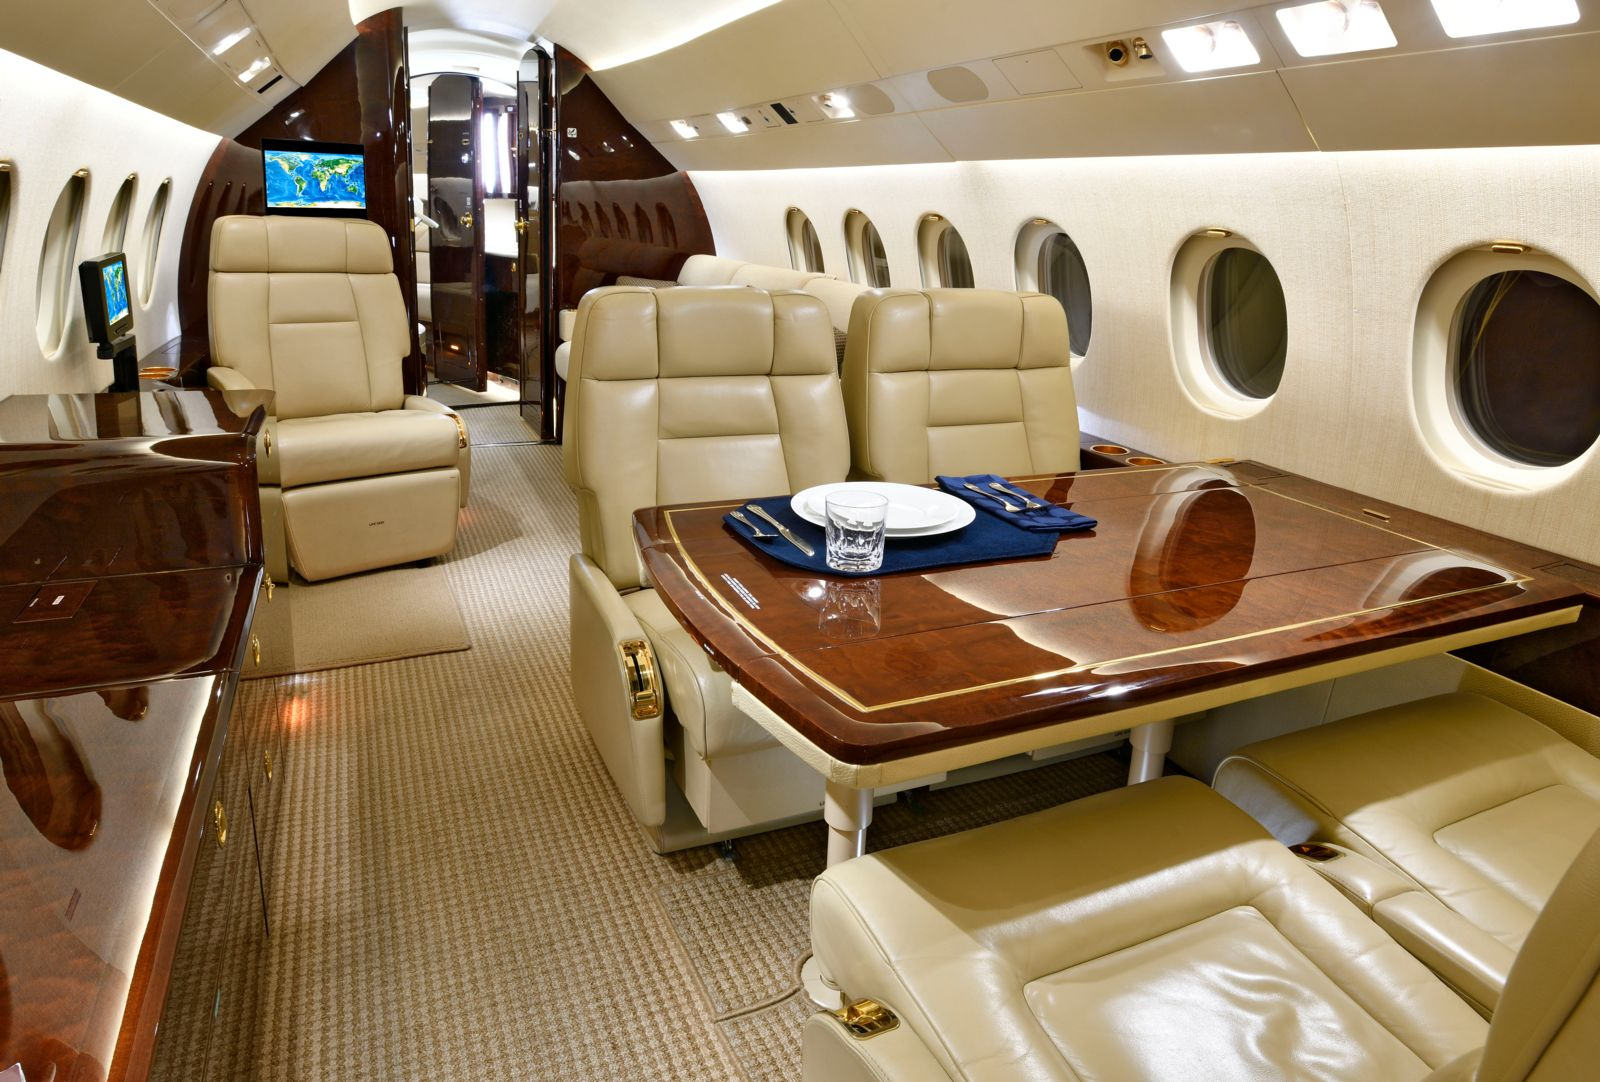 Dassault Falcon 900EX EASy  S/N 229 for sale | gallery image: /userfiles/images/F900EXy_sn229/mid%20aft.jpg